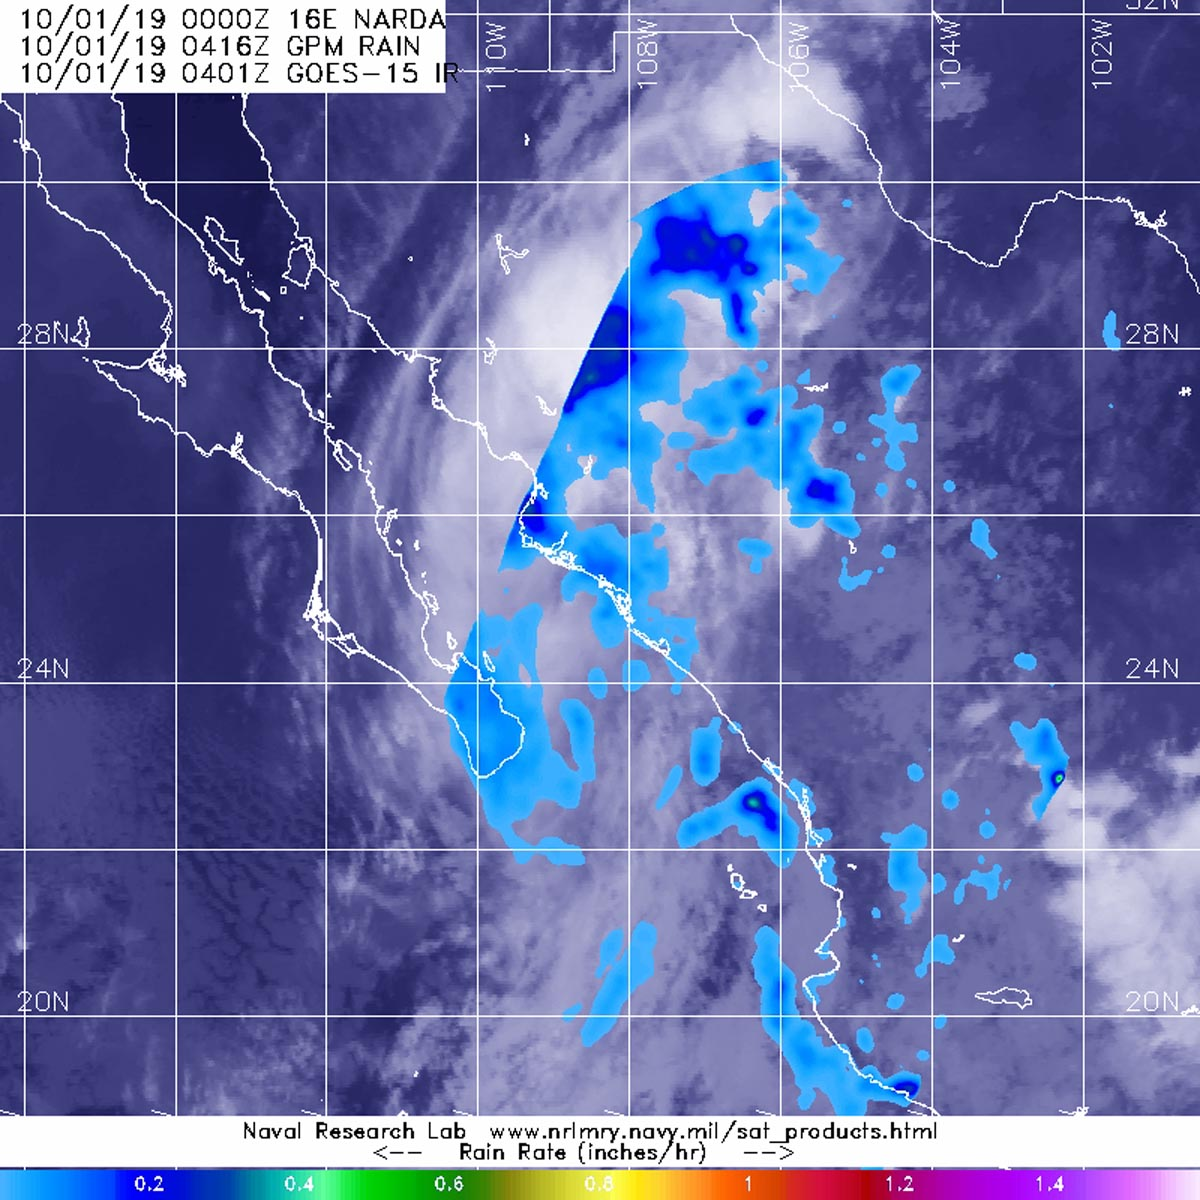 photo:NASA/NRL;desc:The GPM's core satellite passed over Narda's remnants on Oct. 1 at 12:16 a.m. EDT (0416 UTC). GPM found scattered light rain (light blue) from the remnant clouds falling at around 0.2 inches (5 millimeters) per hour. NOAA's GOES-West satellite provided the cloud imagery.